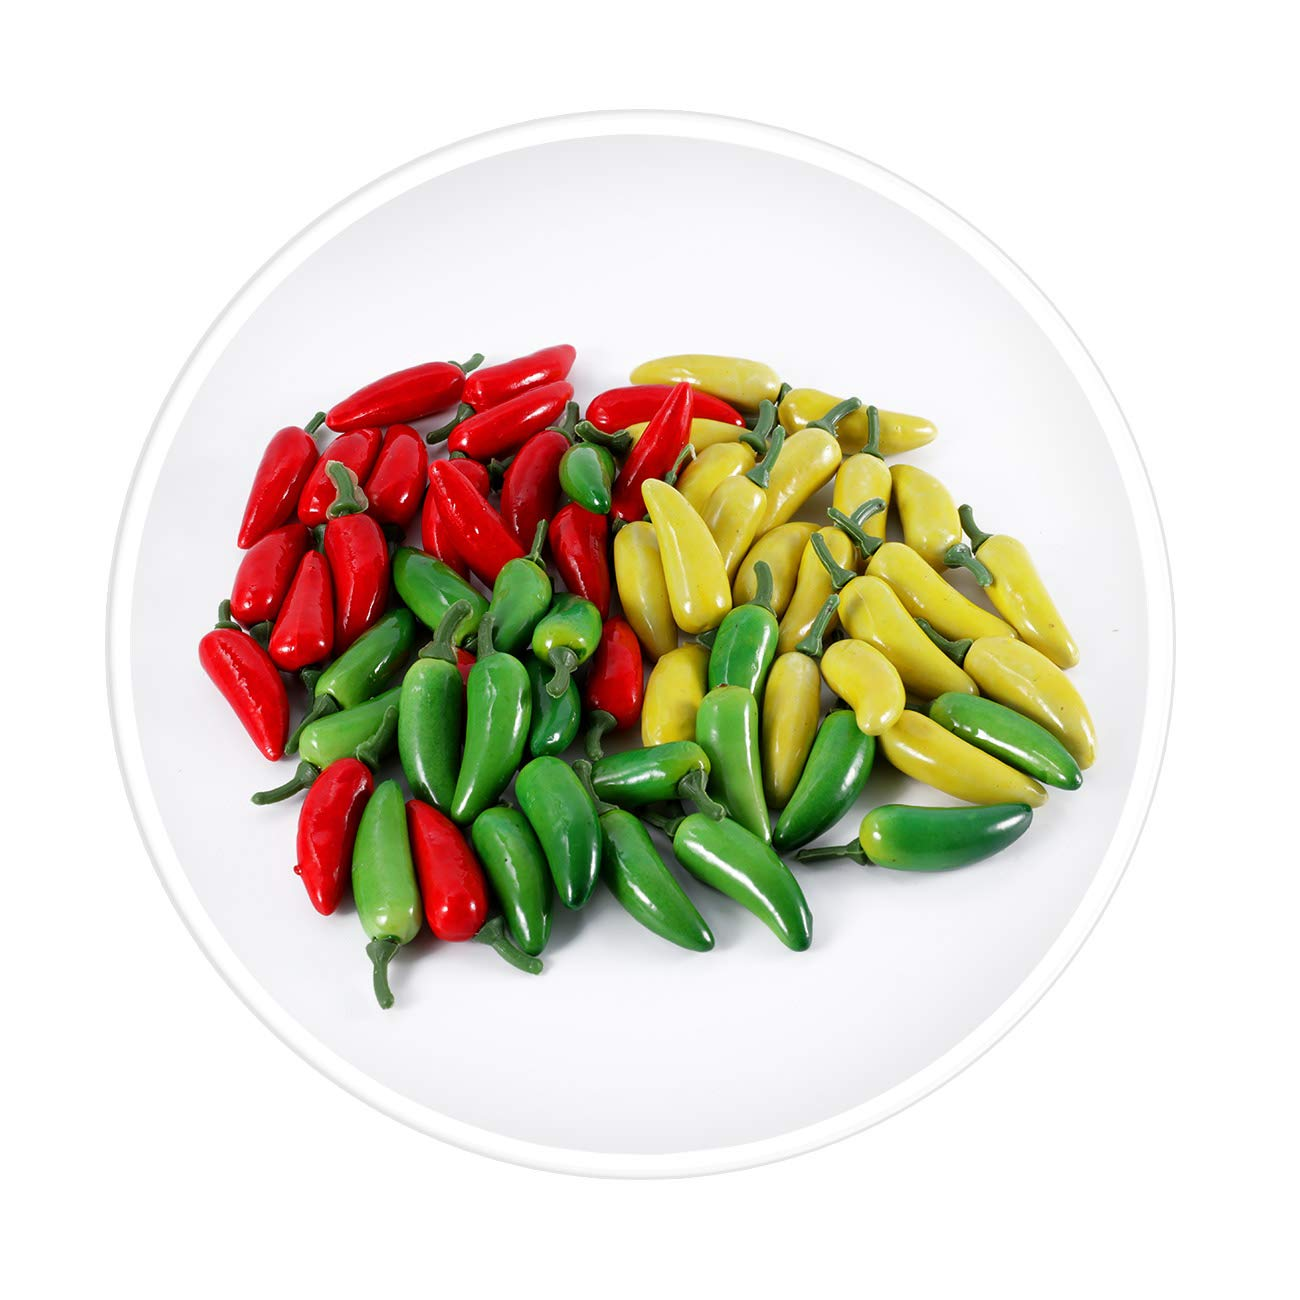 VALUEDEBUT 60pcs Artificial Lifelike Simulation Small Pepper Chili Paprika Fake Vegetable (Yellow Red Green) Photo Props Home Decor Each Color 20pcs